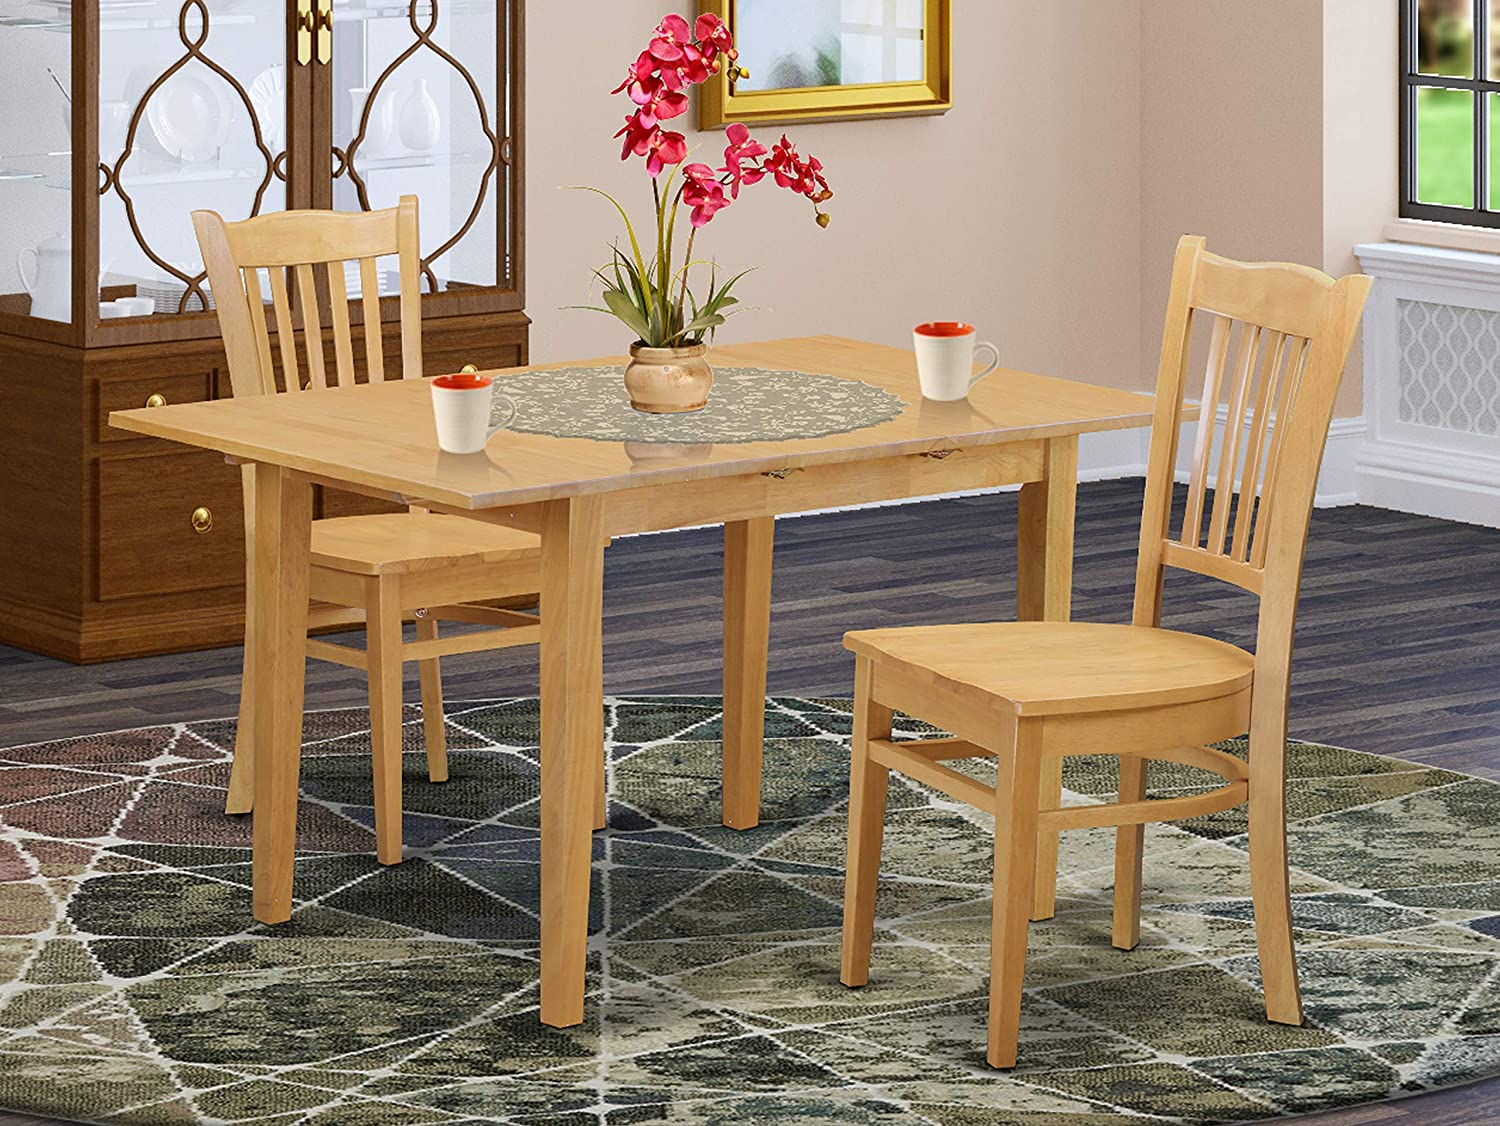 3 Max 55% OFF PC Max 44% OFF Dining room set - and Chairs Table Kitchen 2 Dinette